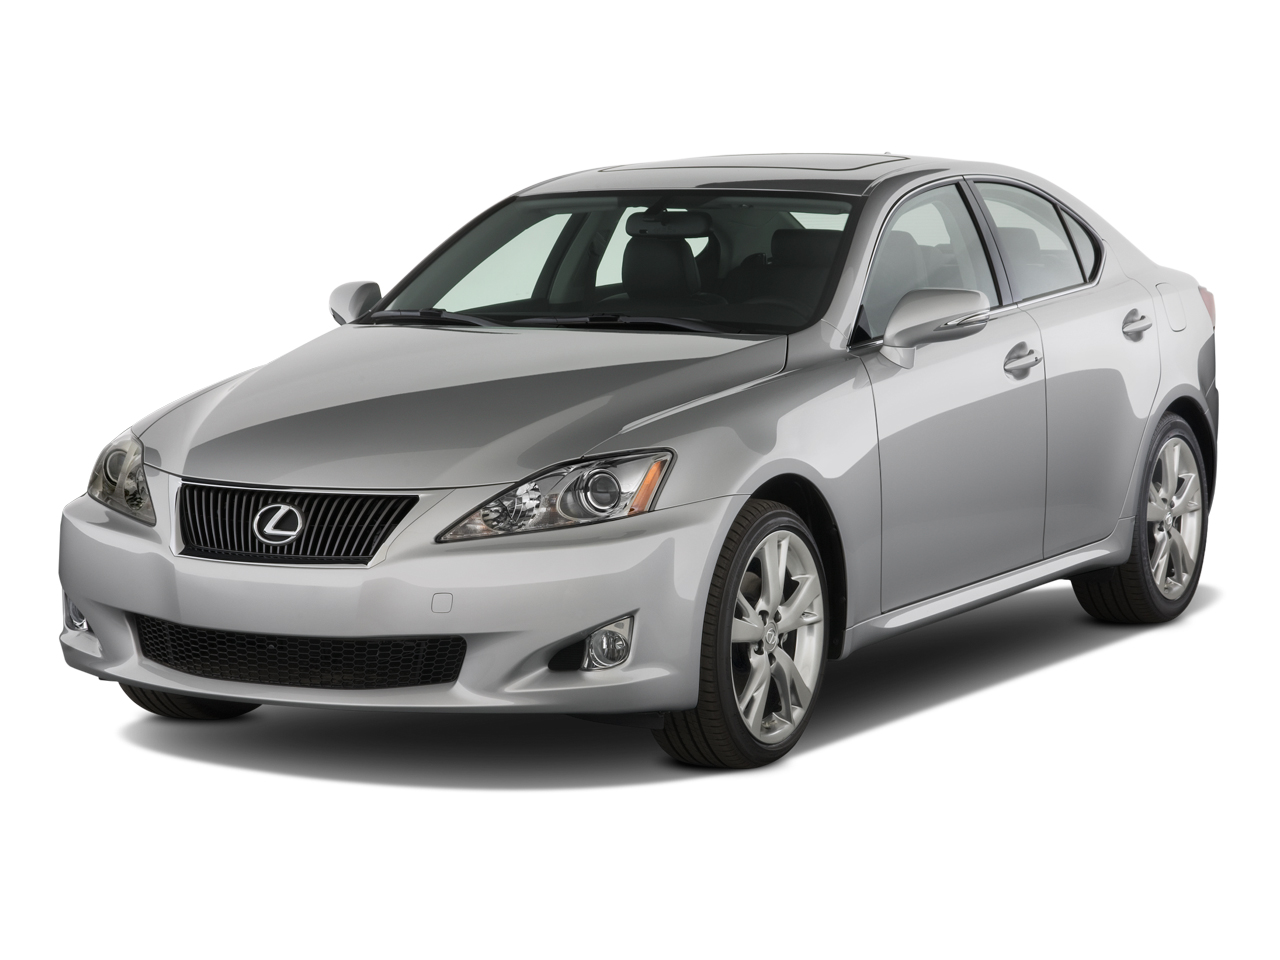 2010 lexus is 250 review ratings specs prices and. Black Bedroom Furniture Sets. Home Design Ideas